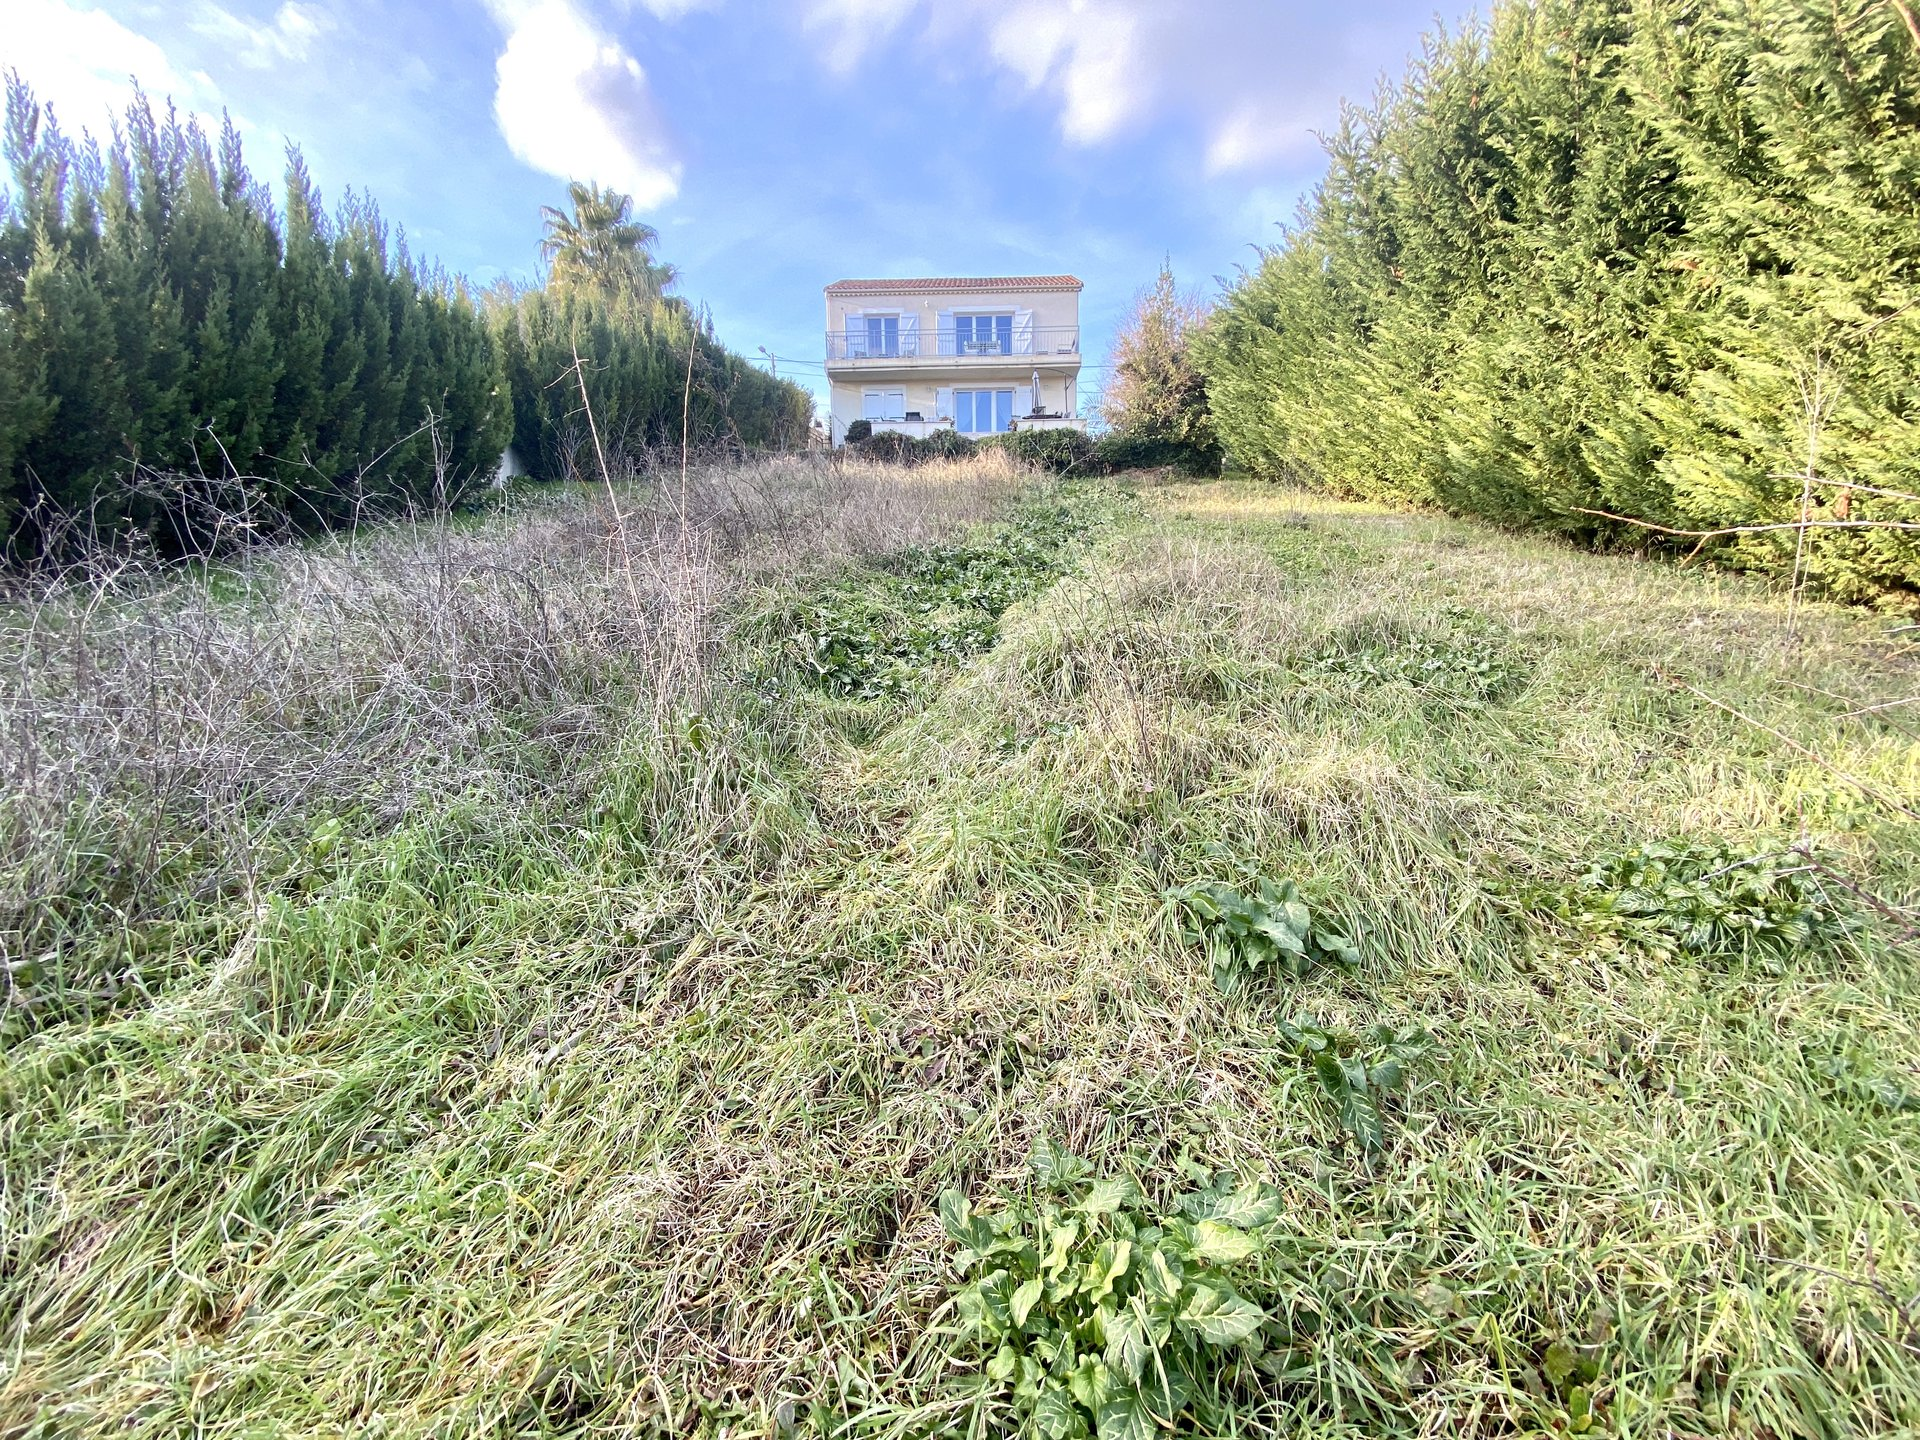 In Antibes, in the residential sector of Constance, this plot of land Constructible